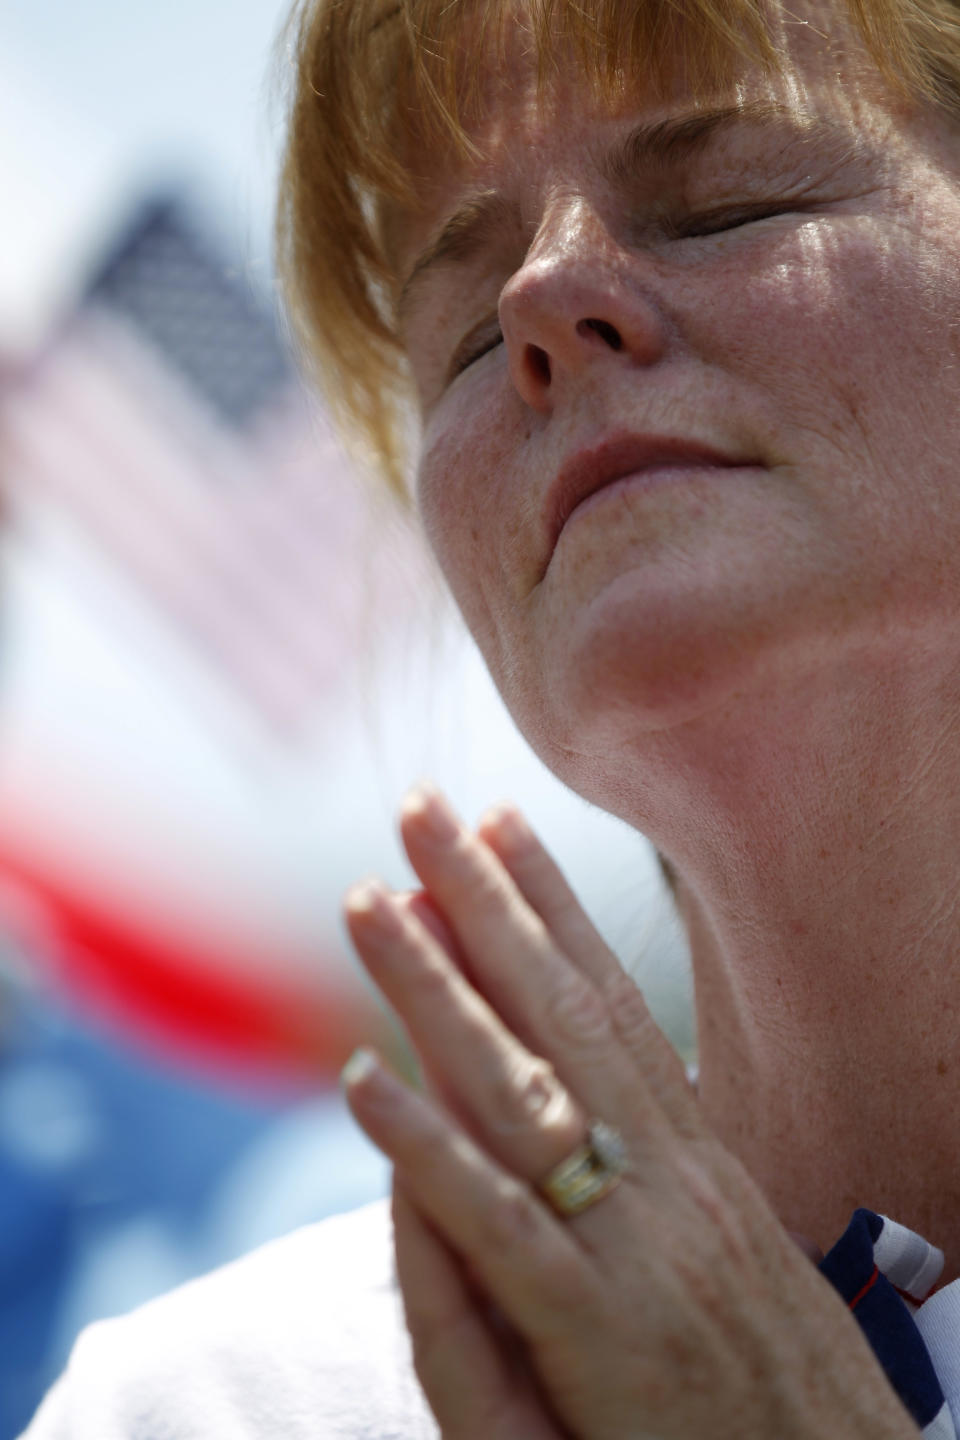 Deb Mirenda of Coatesville, Pa. closes her eyes as she listens to a speaker, during a protest against the Obama administration mandate that employers provide workers birth control coverage, at Independence Mall, Friday, June 8, 2012, in Philadelphia. The event was organized by Stand Up For Religious Freedom. (AP Photo/Matt Rourke)